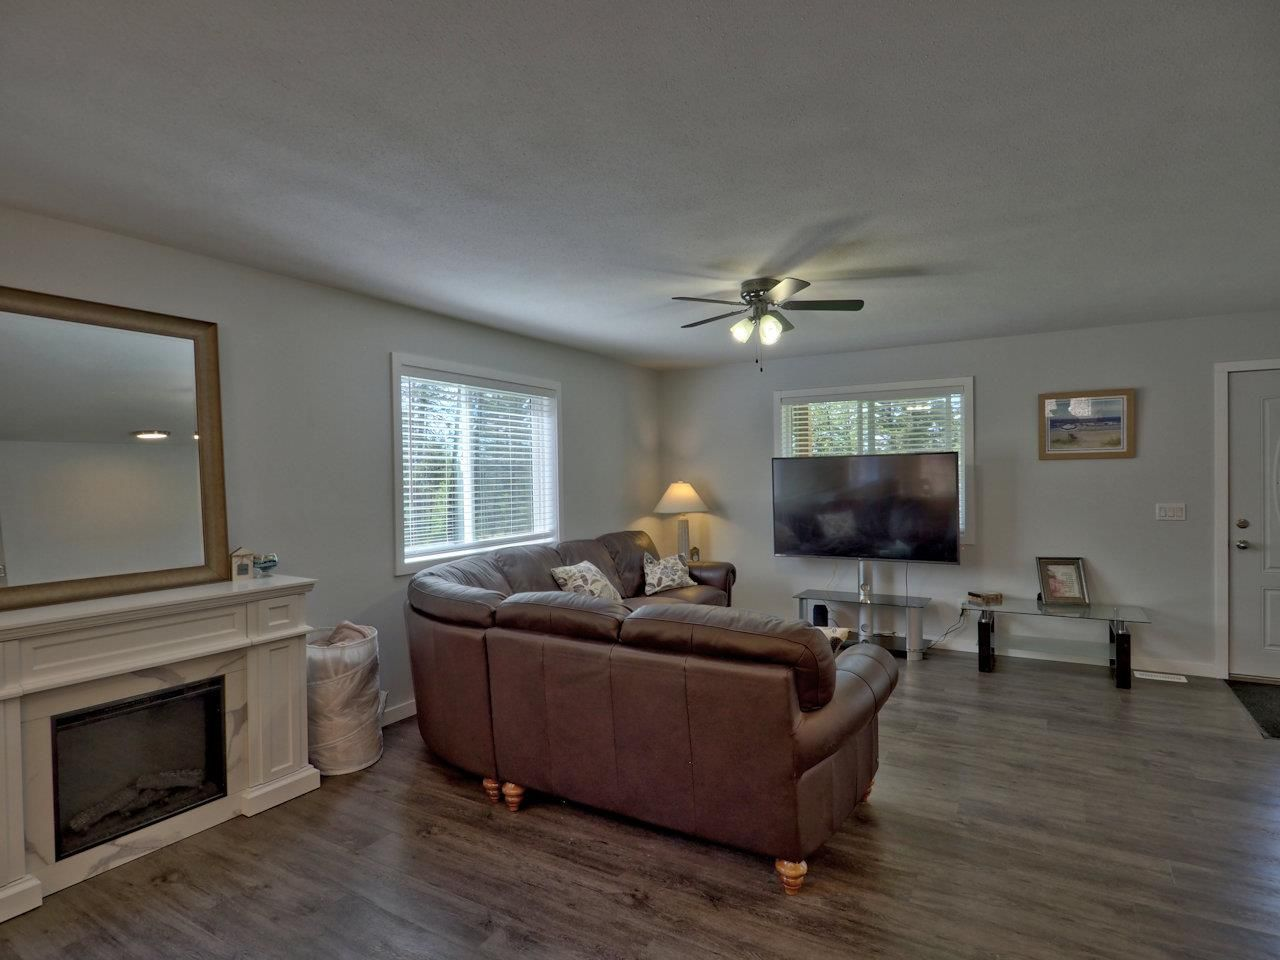 Photo 14: Photos: 4915 KITWANGA Drive in 108 Mile Ranch: 108 Ranch House for sale (100 Mile House (Zone 10))  : MLS®# R2481177